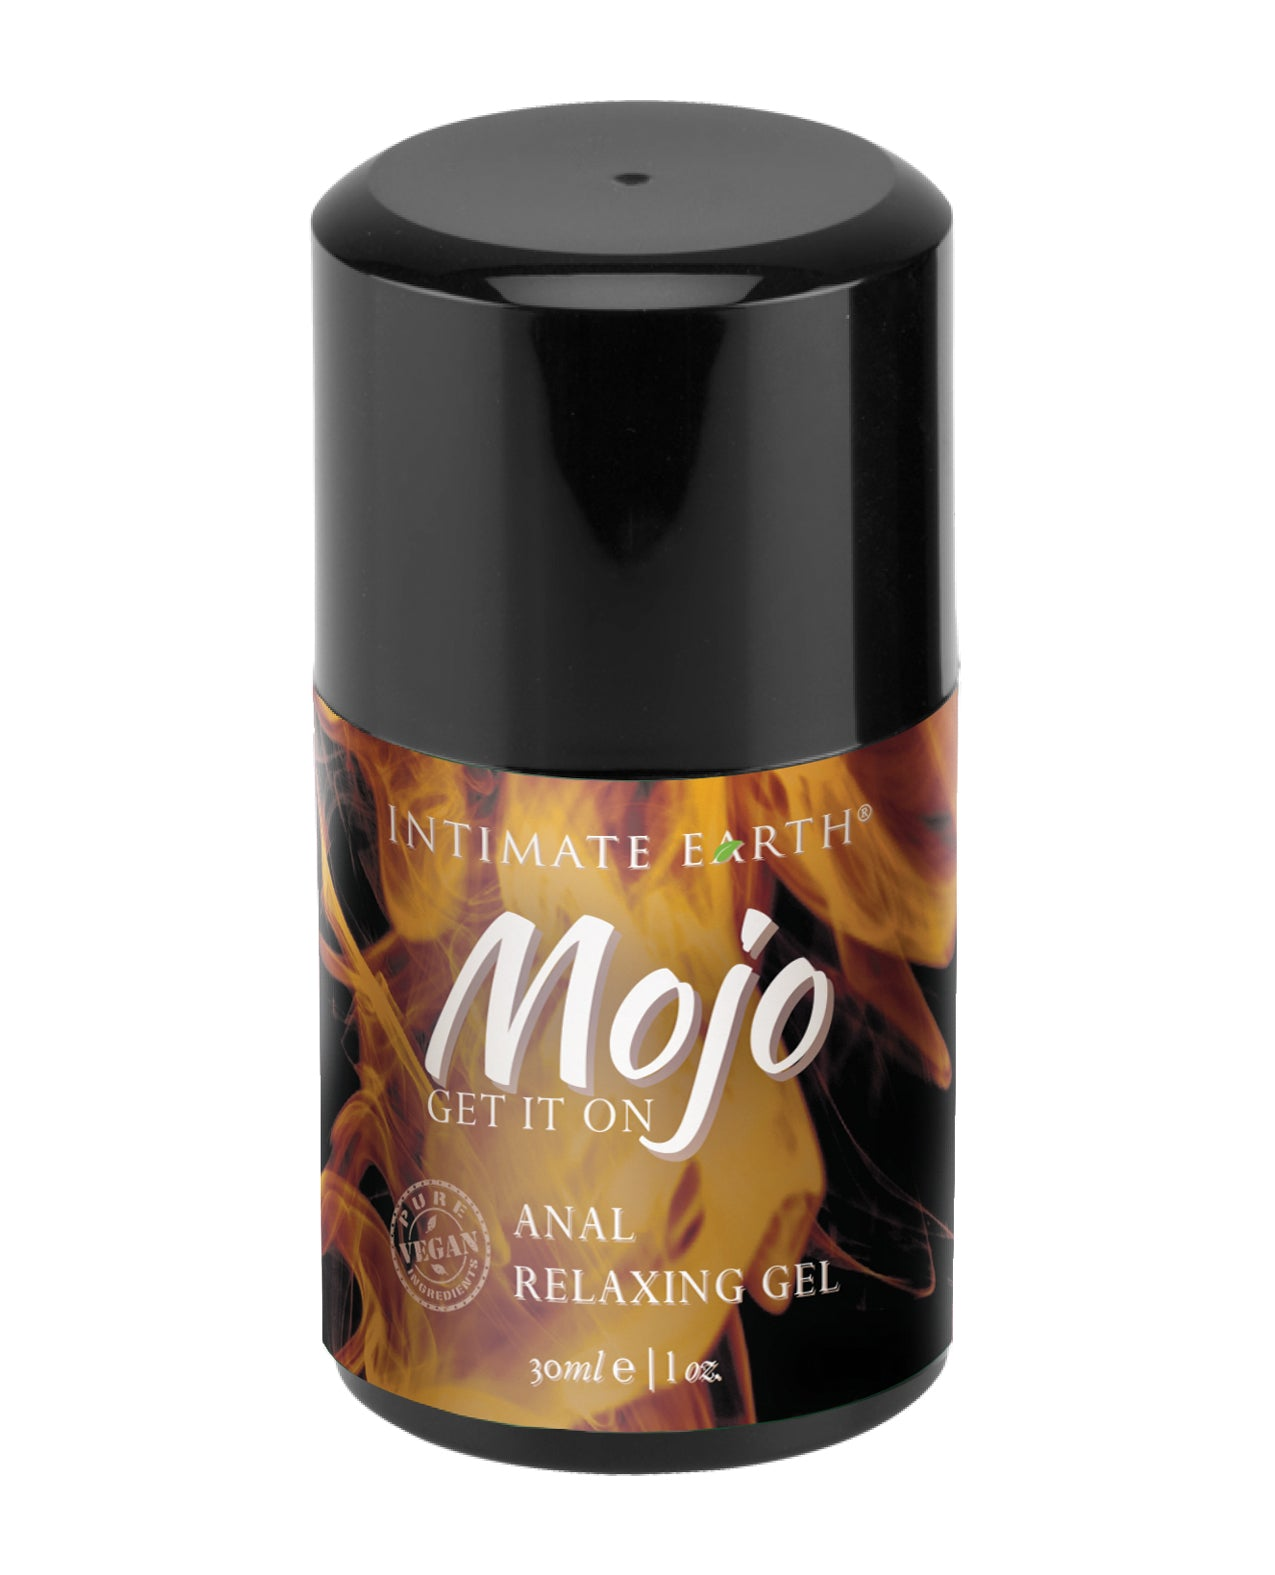 Intimate Earth Mojo Clove Anal Relaxing Gel - 4 oz